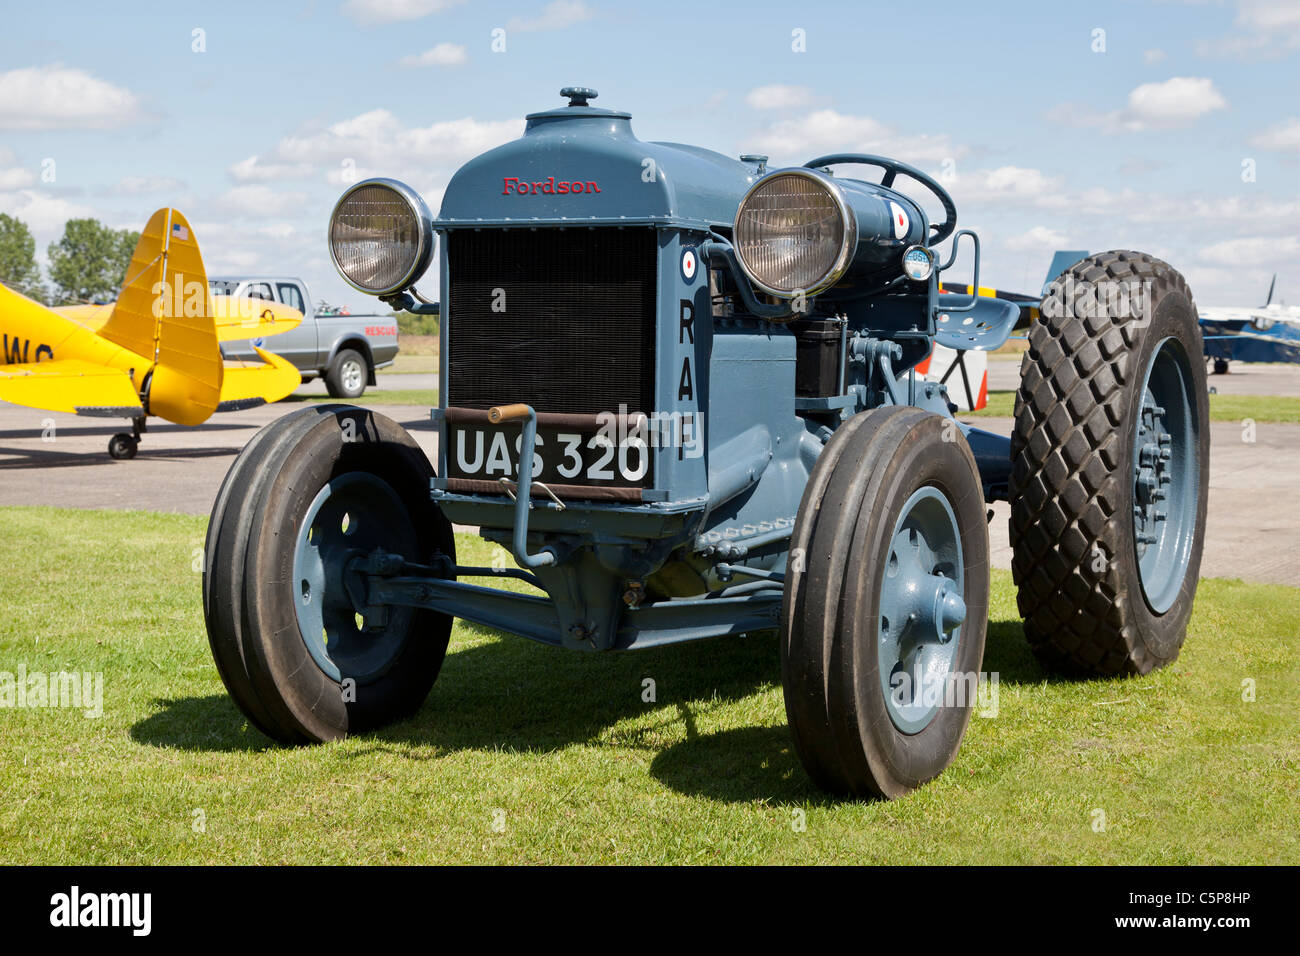 Vintage Fordson tractor painted as an RAF vehicle - Stock Image